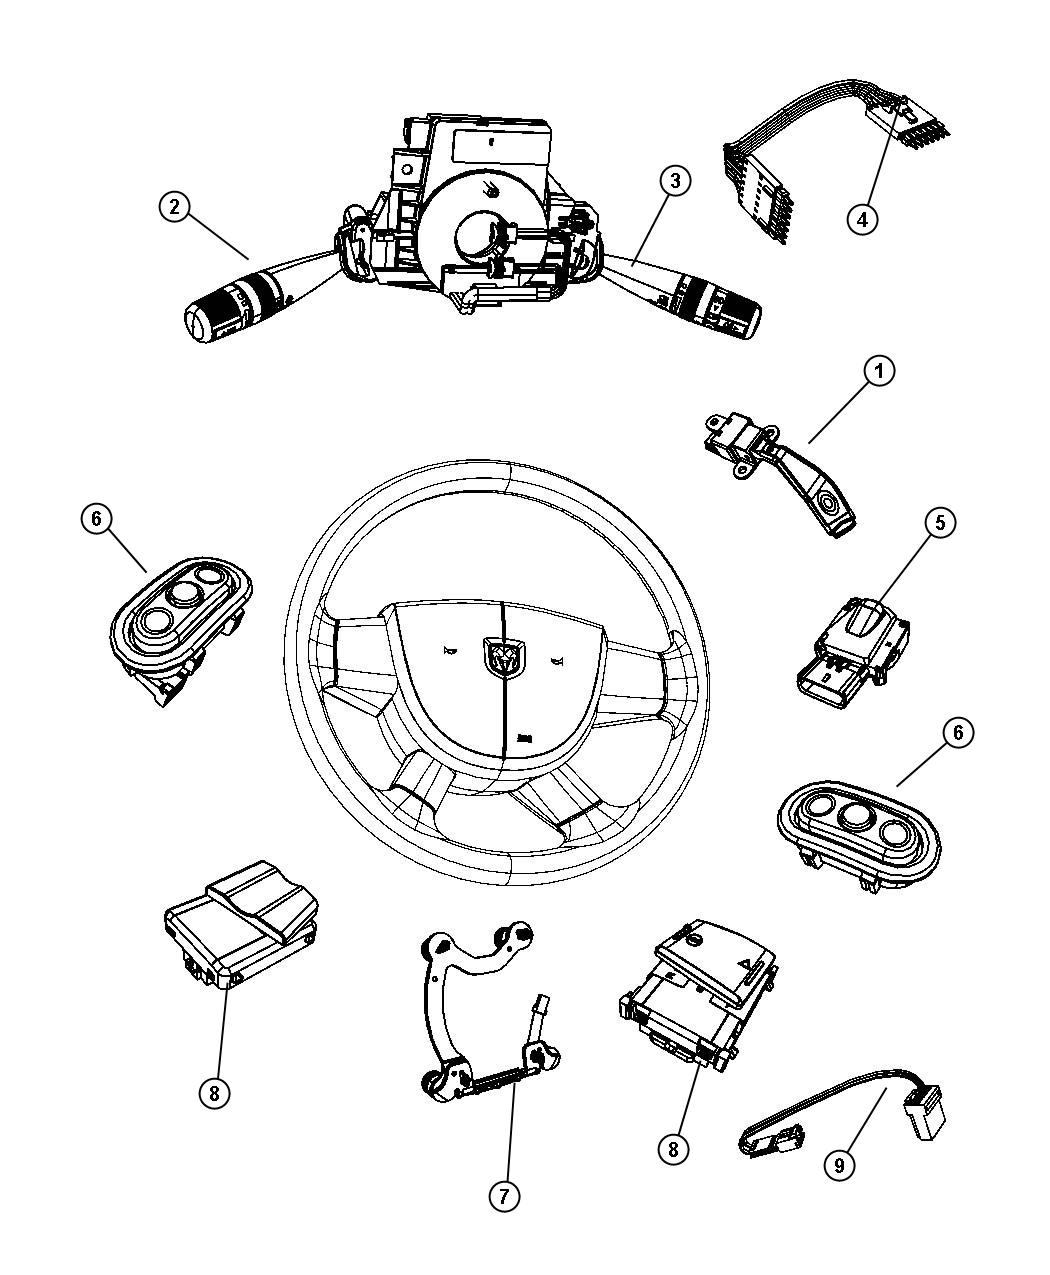 i2249449 horn and steering wheel buttons dodge nitro forum dodge nitro fuse box diagram at bakdesigns.co